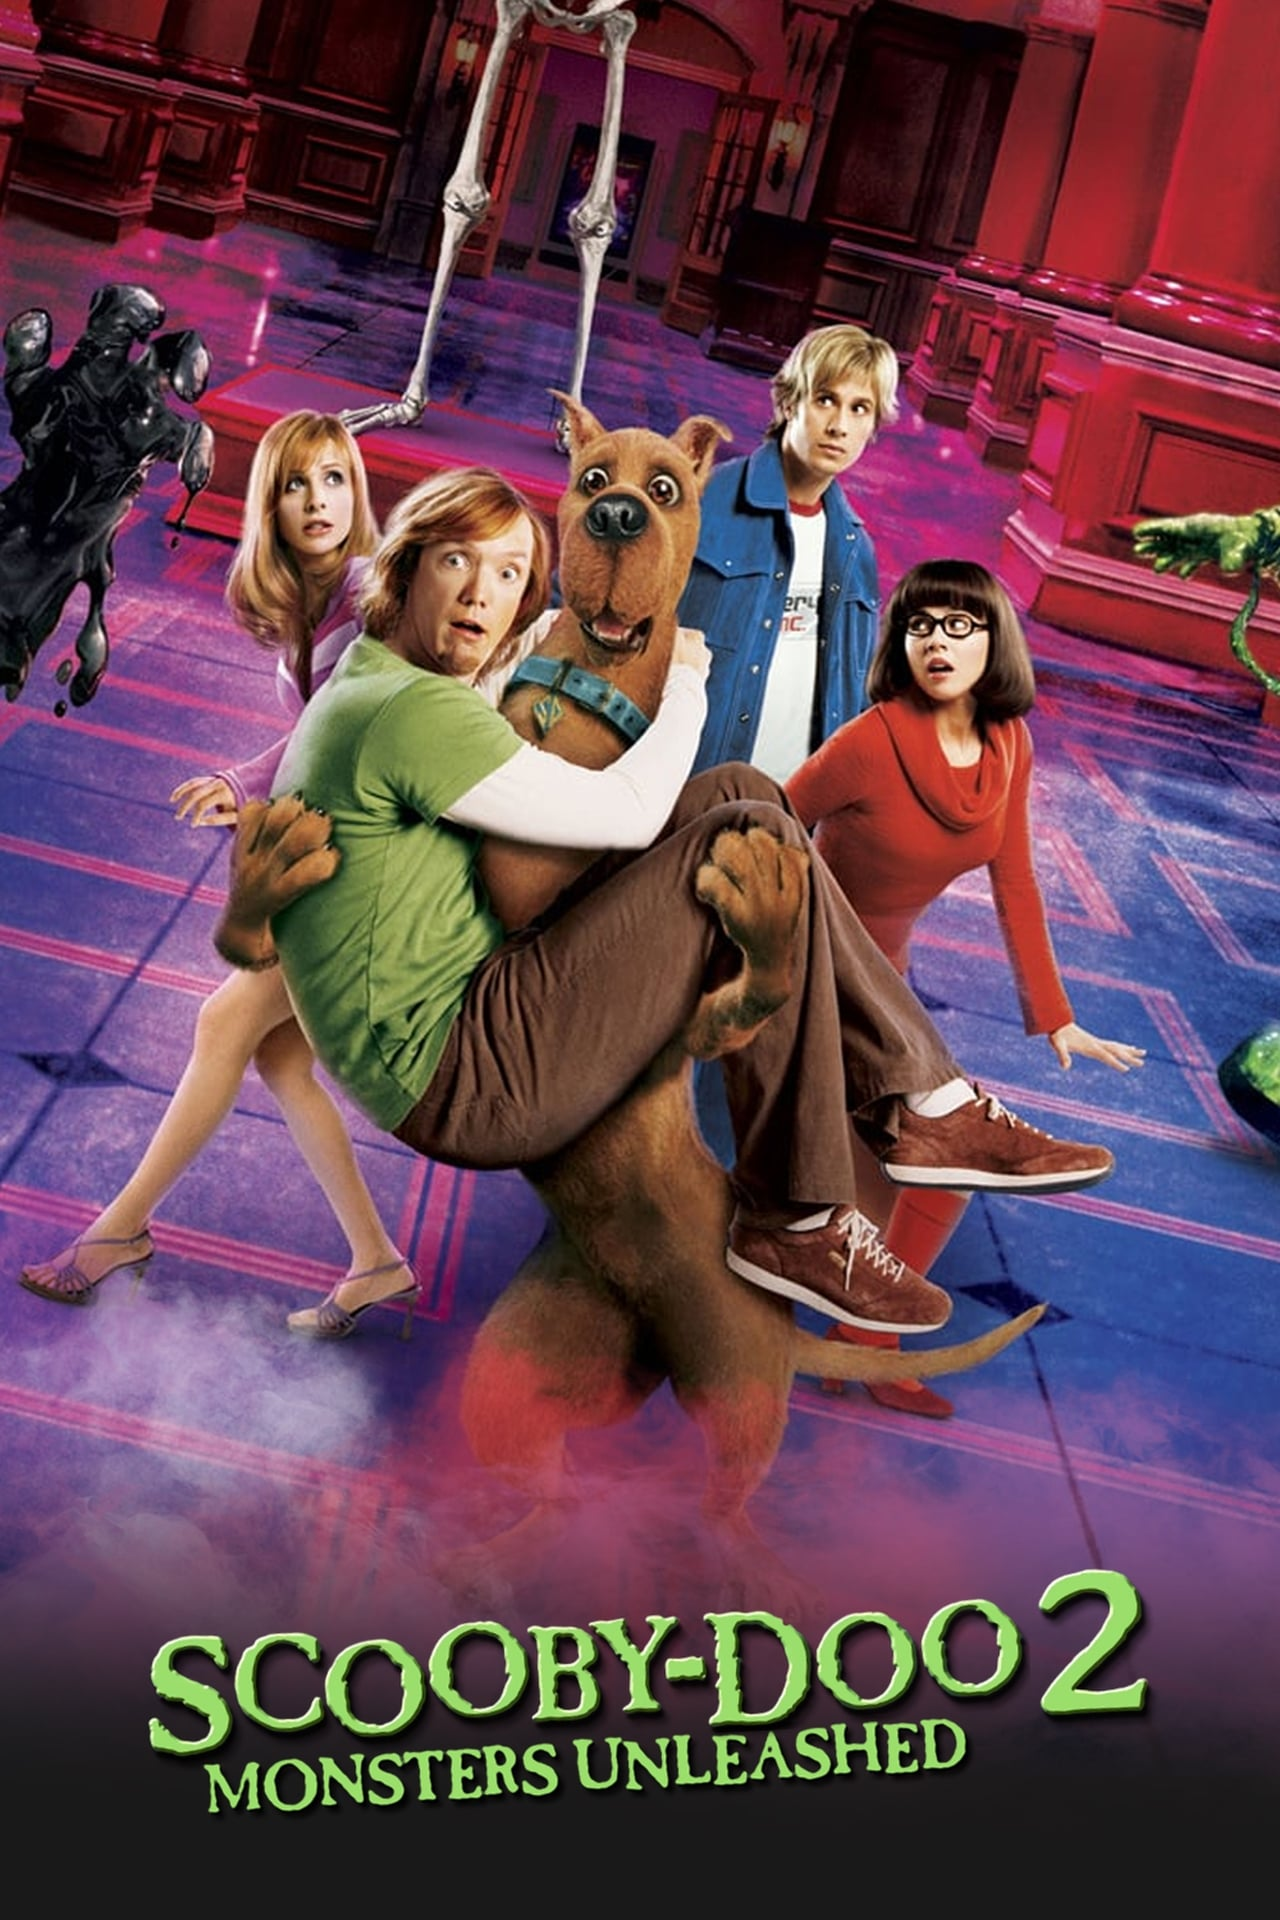 Scooby Doo 2 Monsters Unleashed Wiki Synopsis Reviews Watch And Download